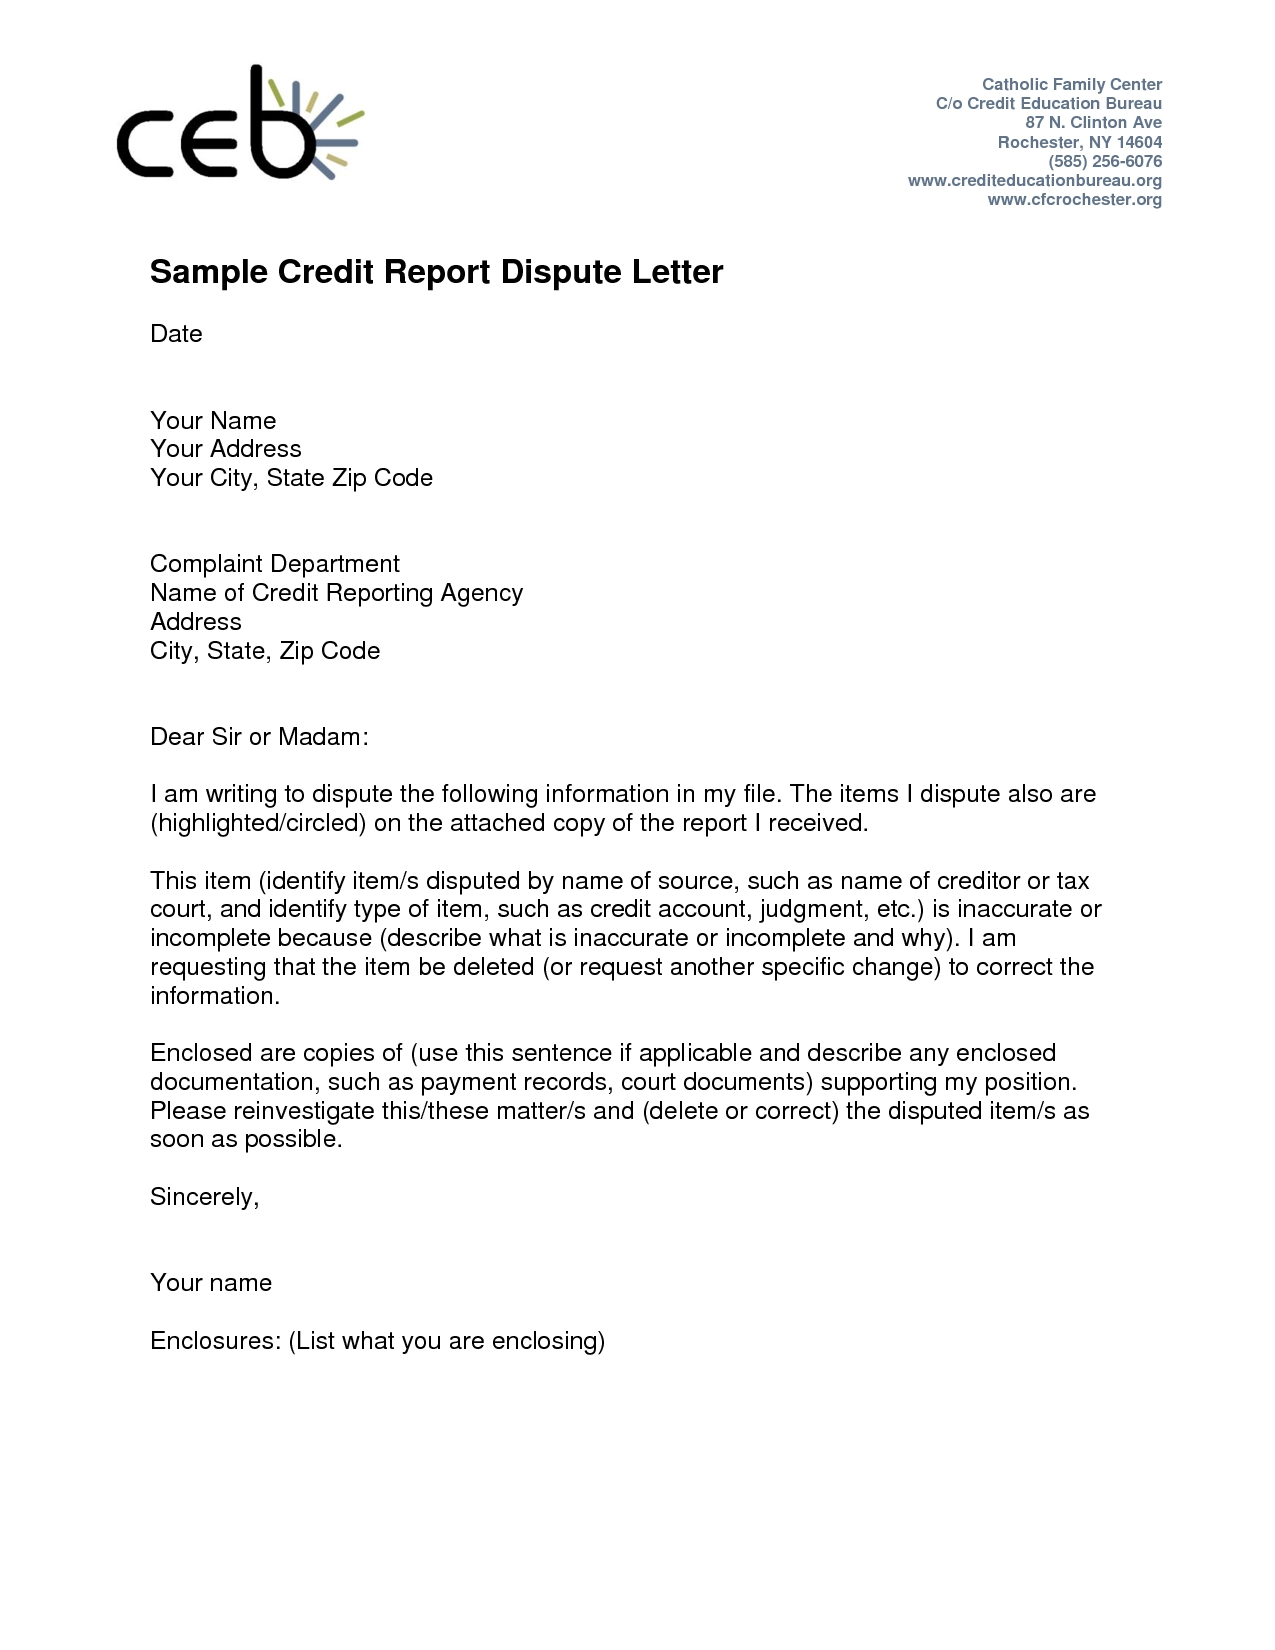 Pay for Delete Letter Template - Credit Dispute Letter Templates Acurnamedia